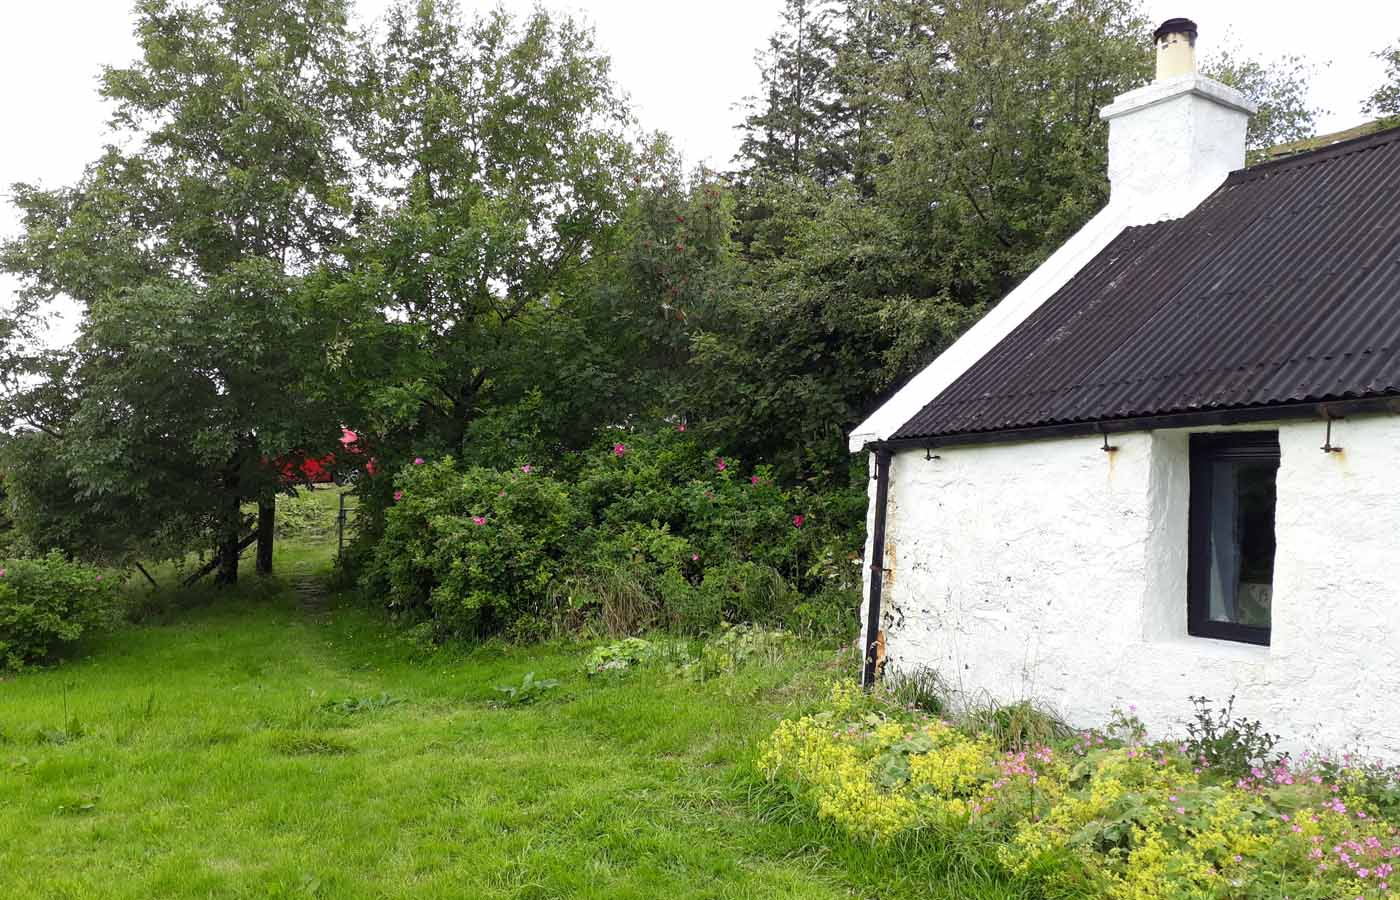 Self catering cottage Tigh Phoil, Elgol, Isle of Skye